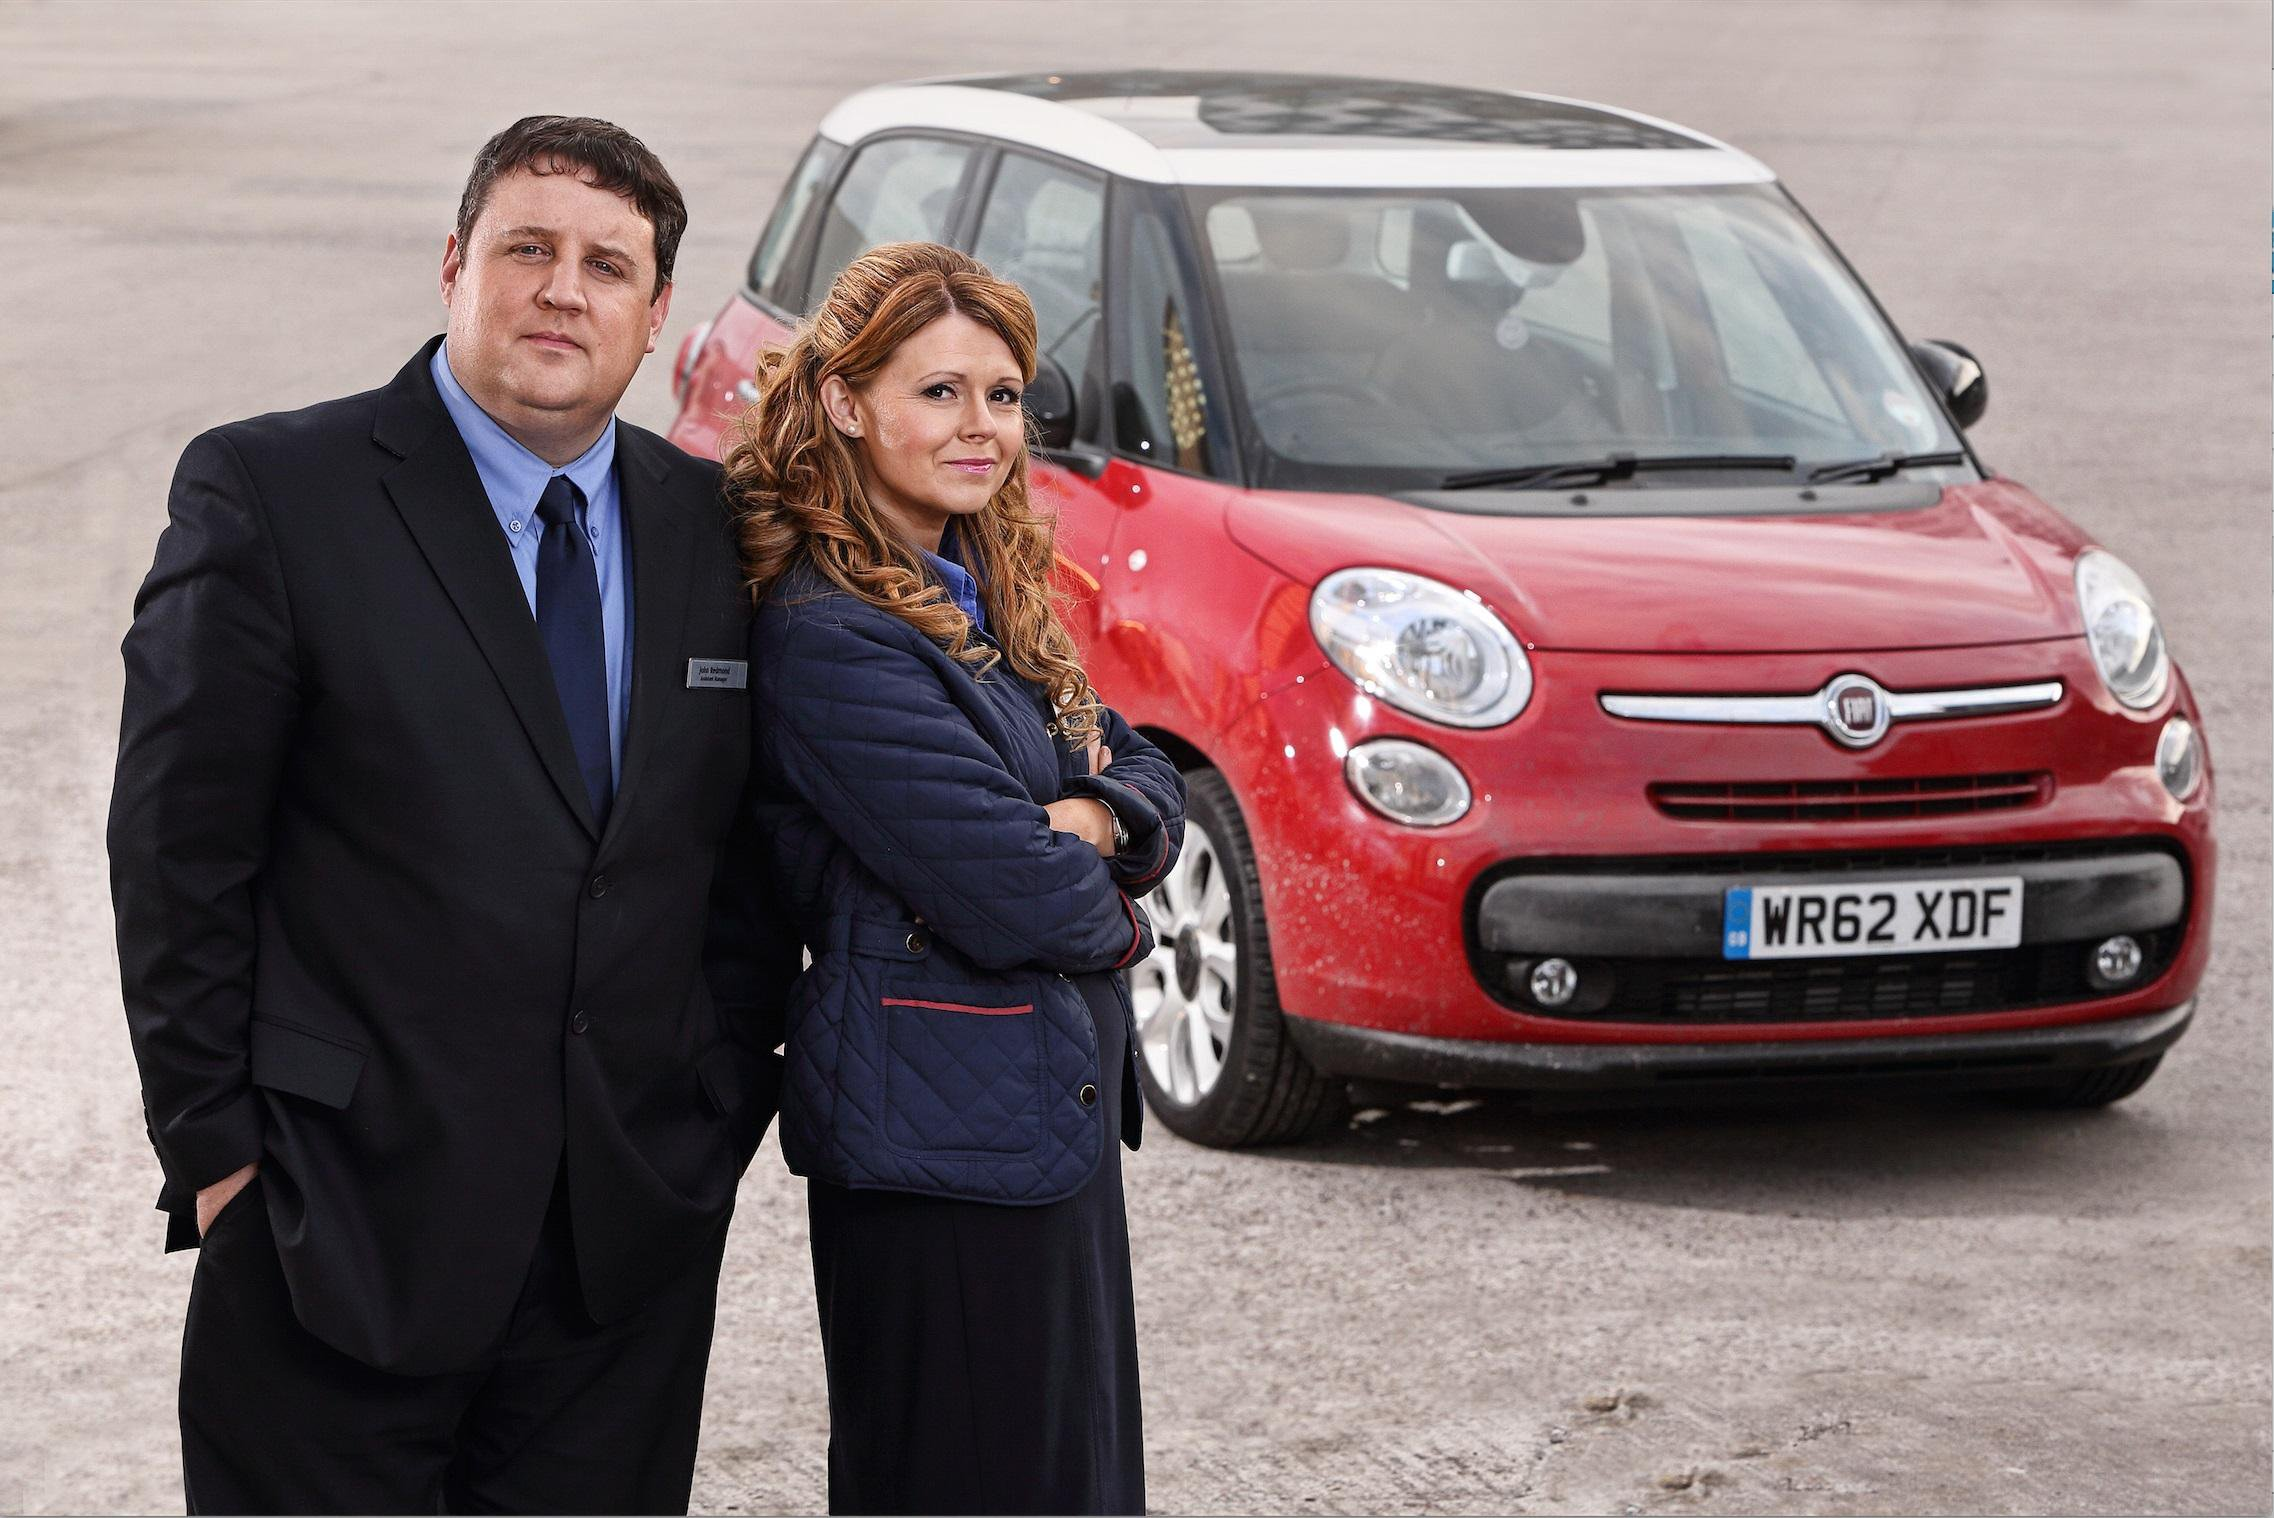 Live Peter Kay Picture: Peter Kay's Car Share Credit: BBC